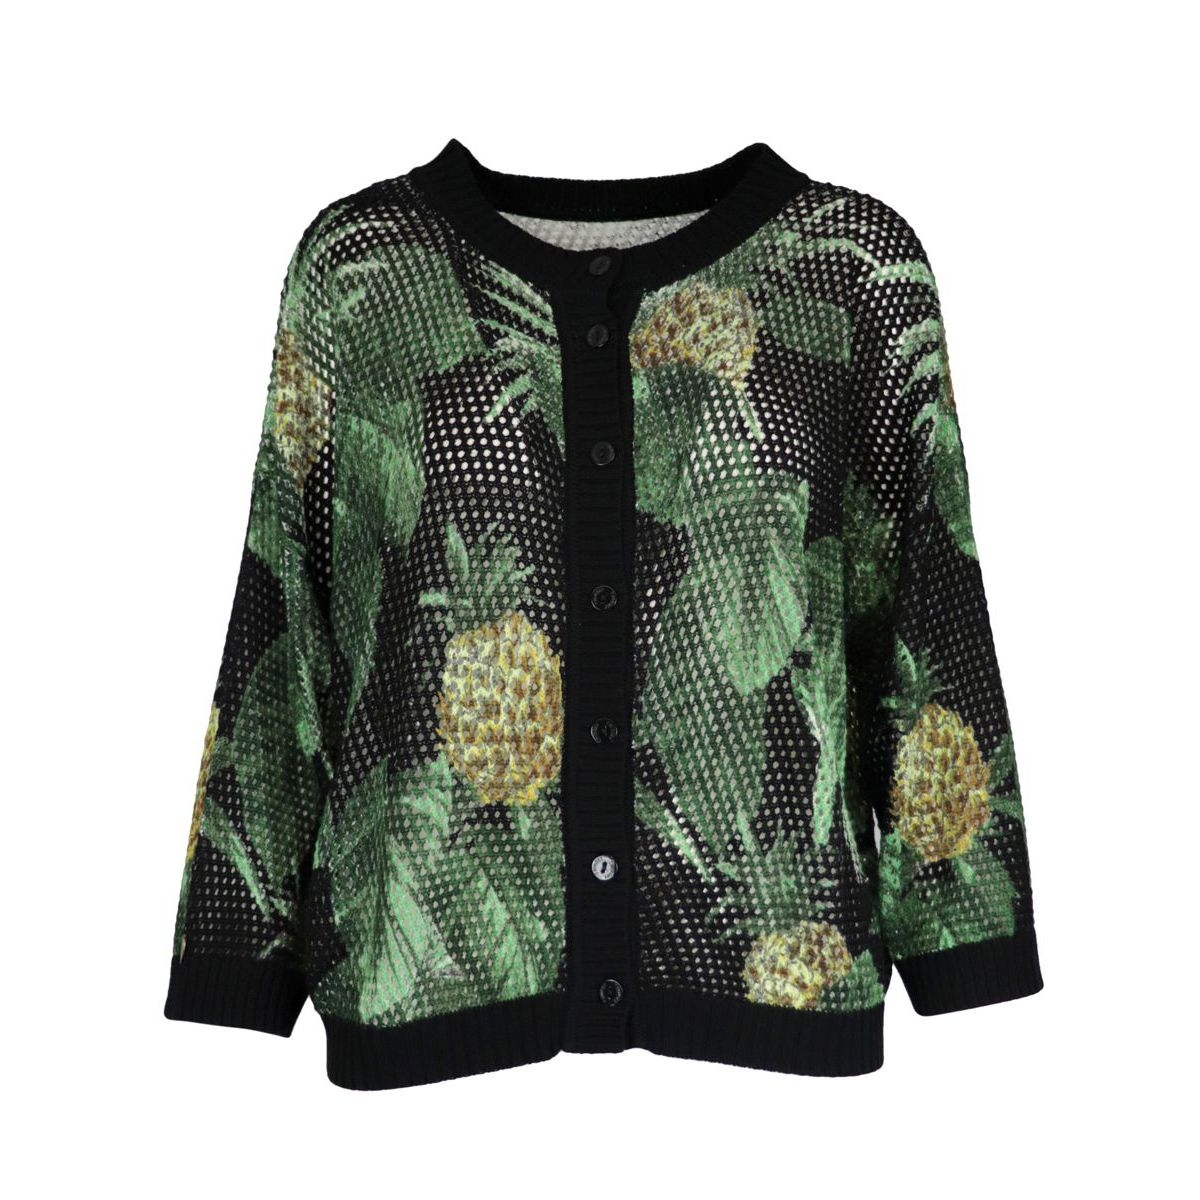 Sweater-cardigan in printed net stitch with contrasting finishes Black Twin-Set